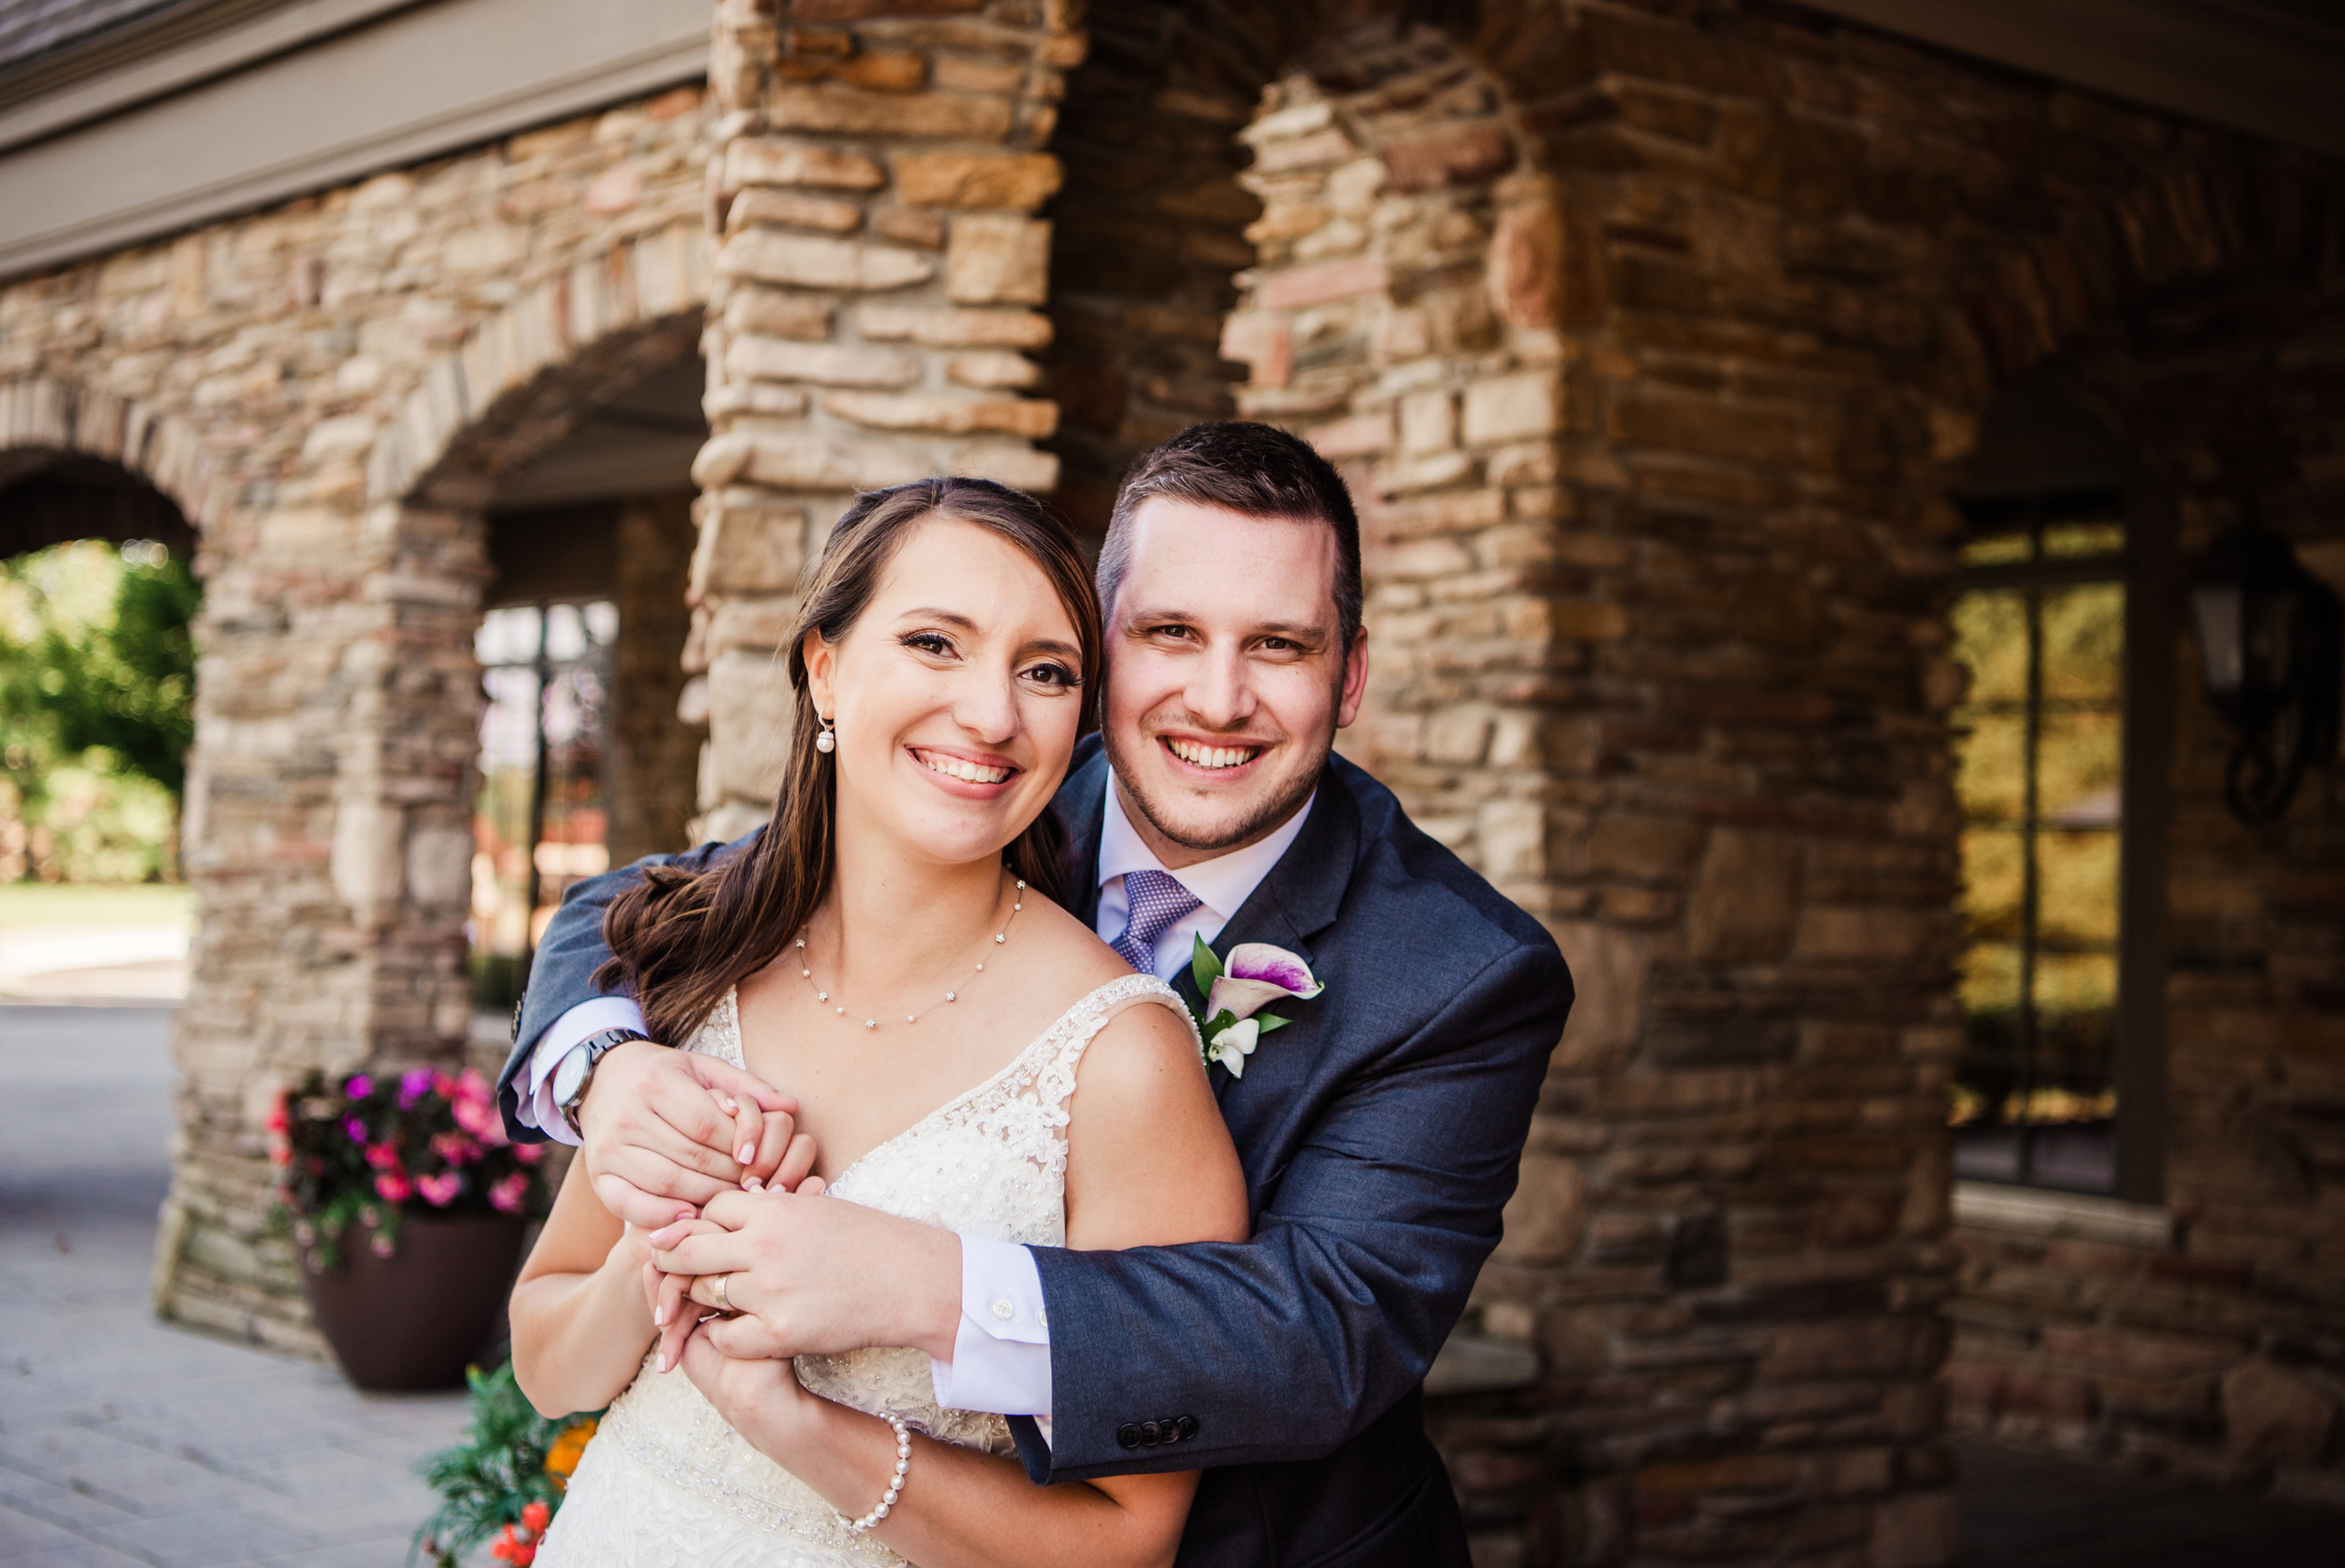 Turning_Stone_Casino_Resort_Central_NY_Wedding_JILL_STUDIO_Rochester_NY_Photographer_DSC_1636.jpg